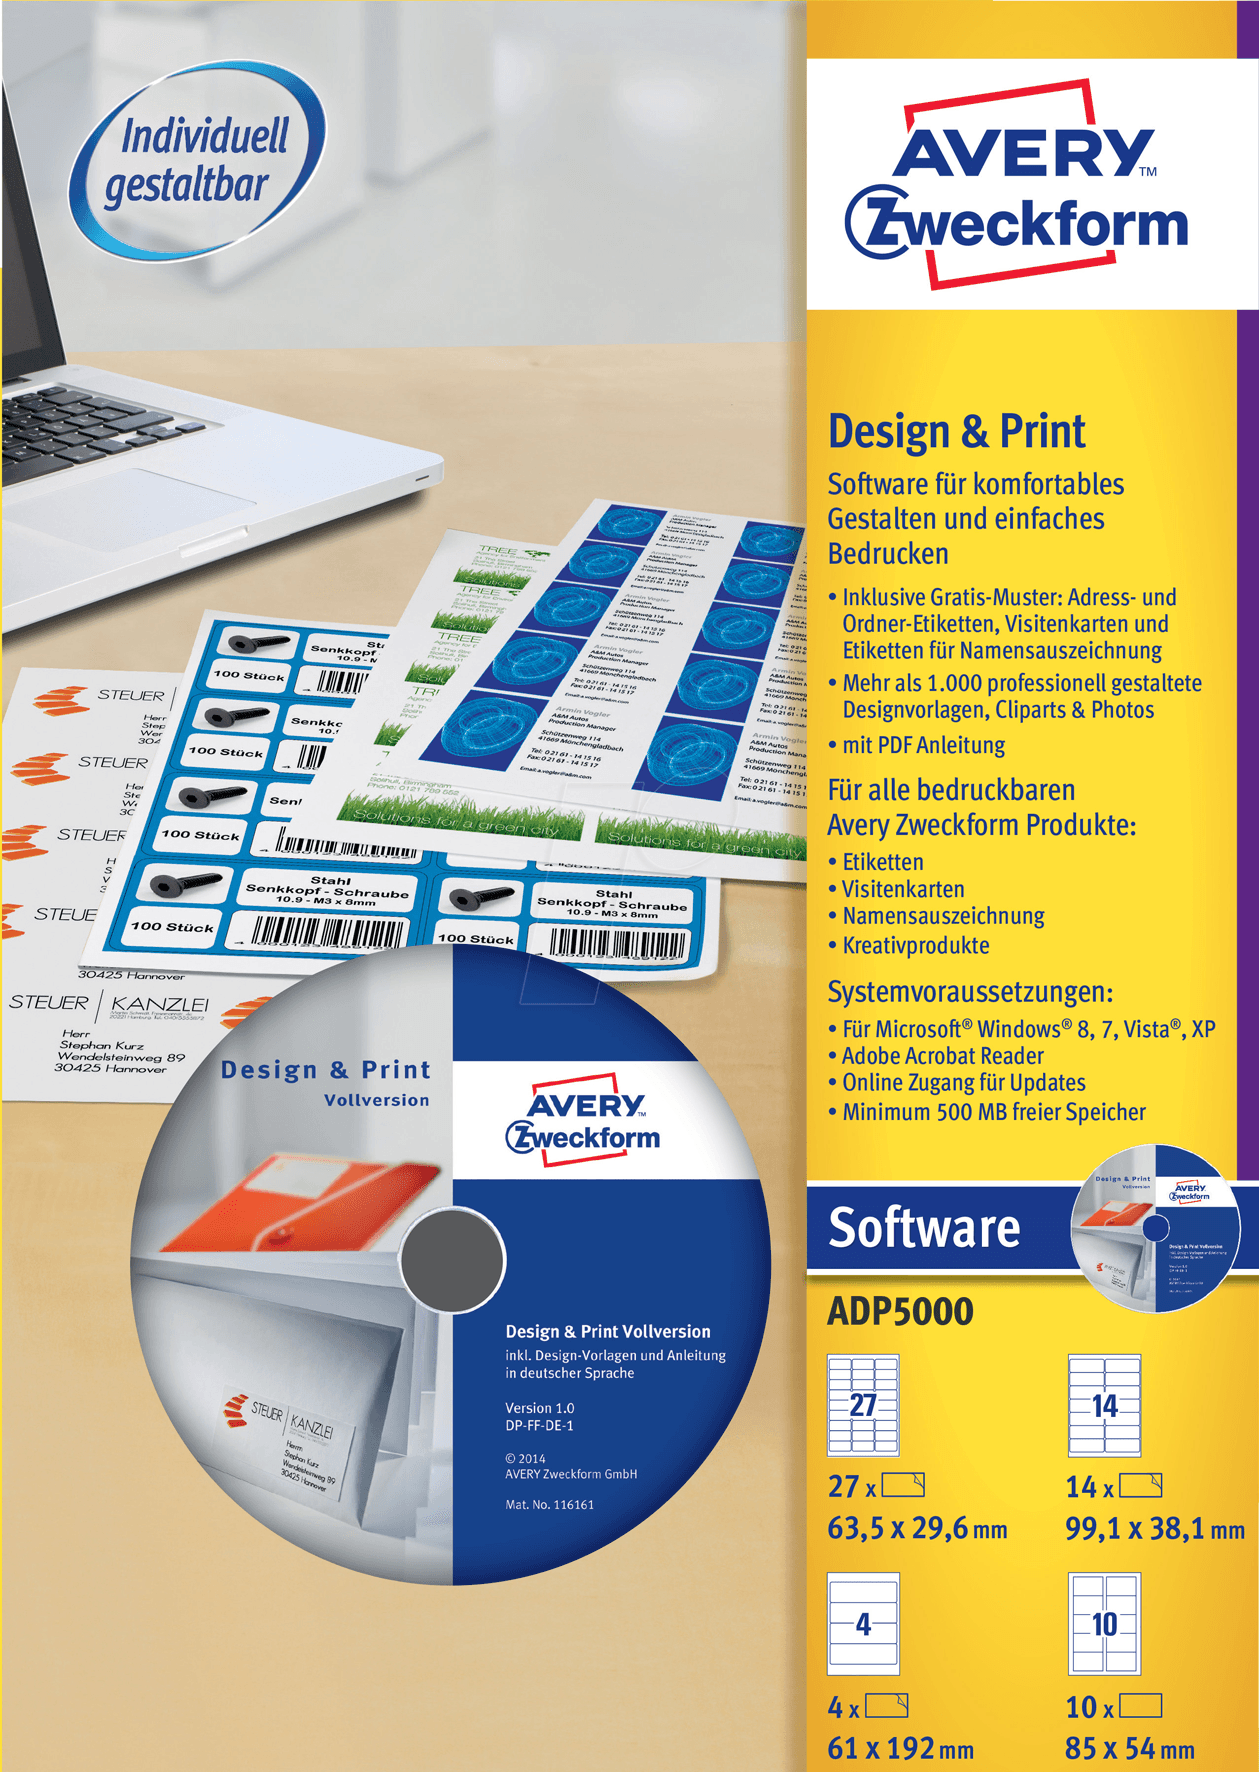 Design Pro 50 Design And Printing Software At Reichelt Elektronik regarding Amazing clipart for avery design pro for your inspiration